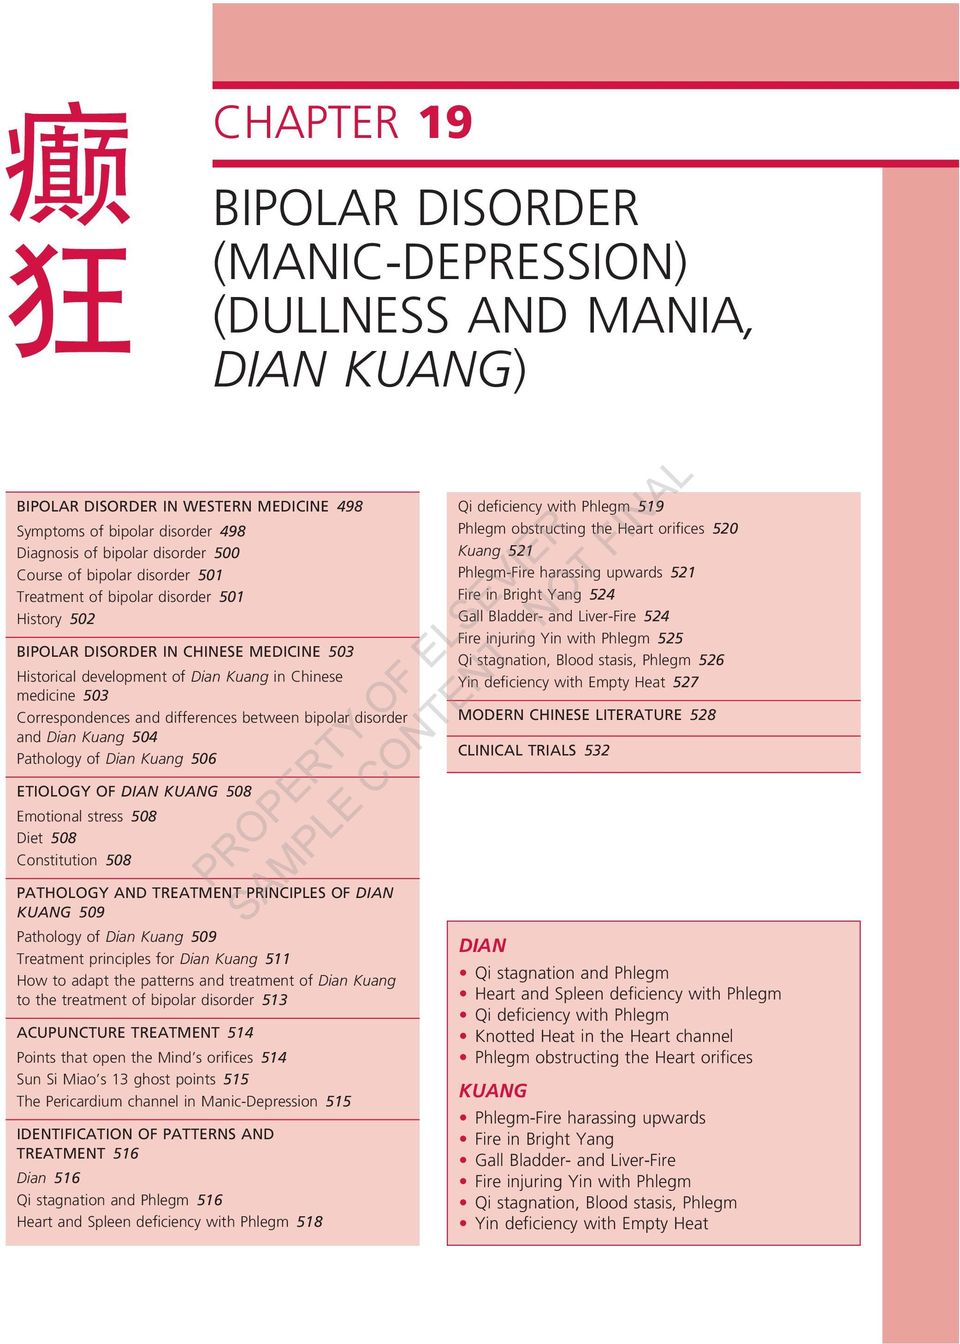 BIPOLAR DISORDER (MANIC-DEPRESSION) (DULLNESS and MANIA